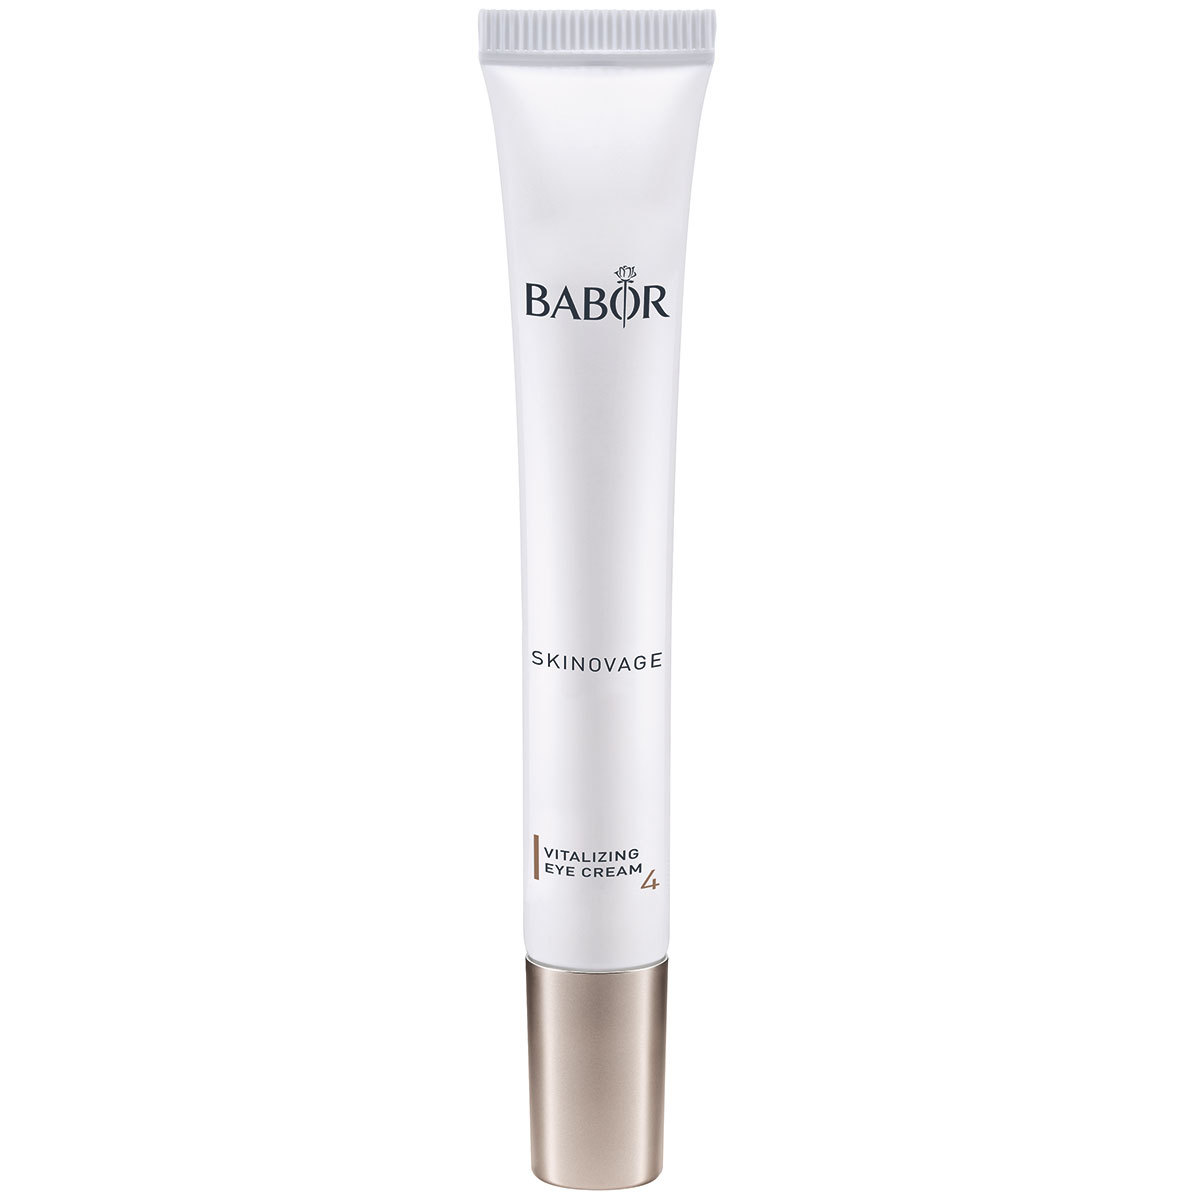 Крем вокруг глаз Babor Skinovage Vitalizing Eye Cream 15ml